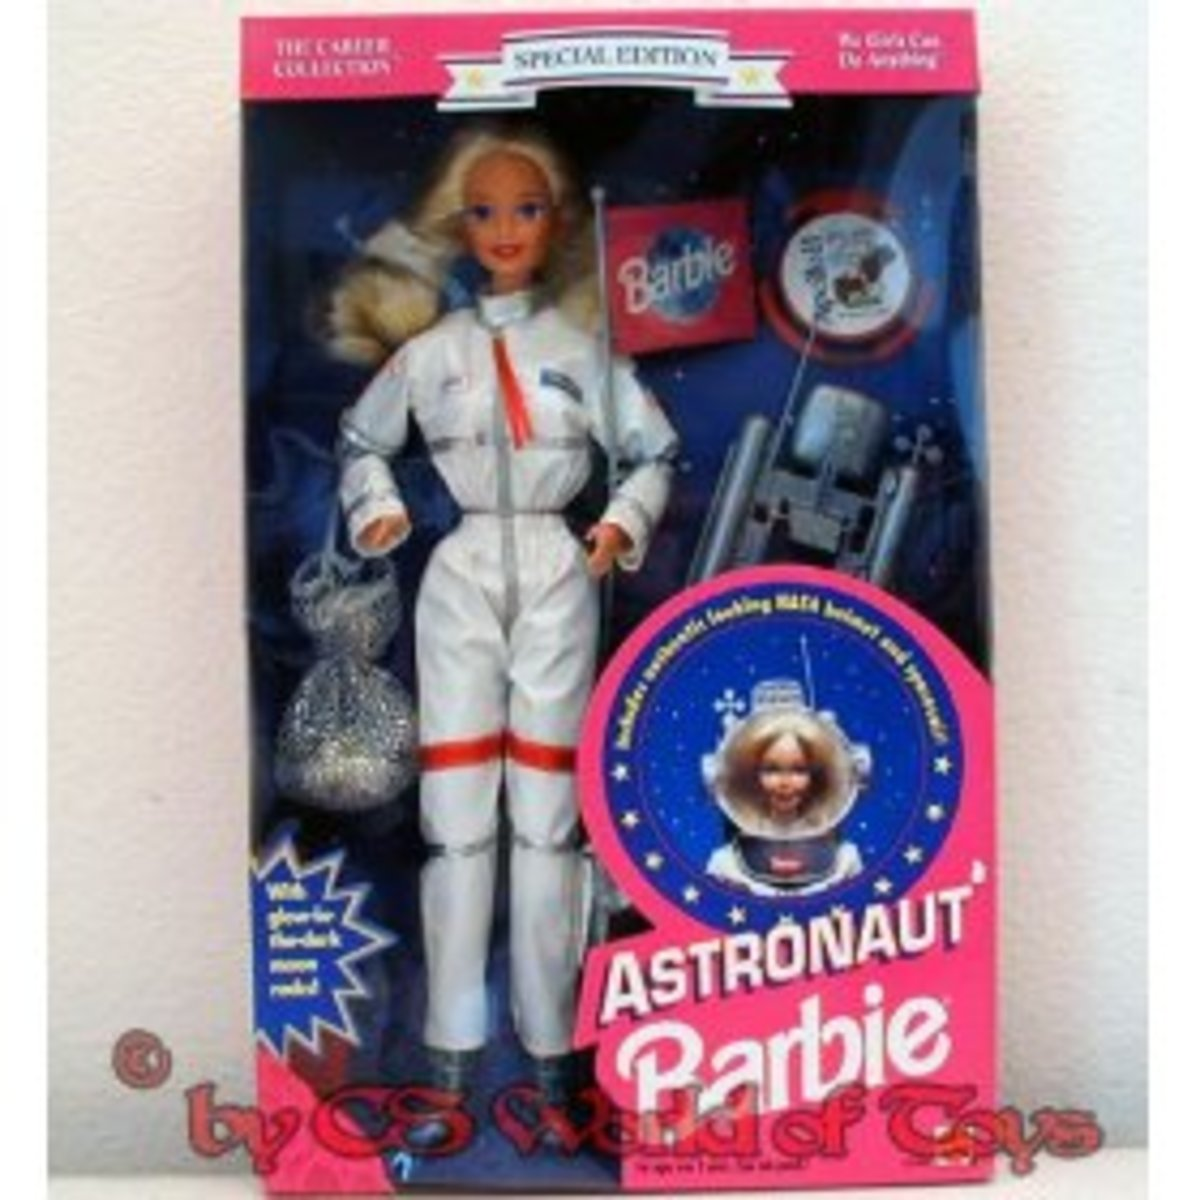 Astronaut Barbie from Amazon.com